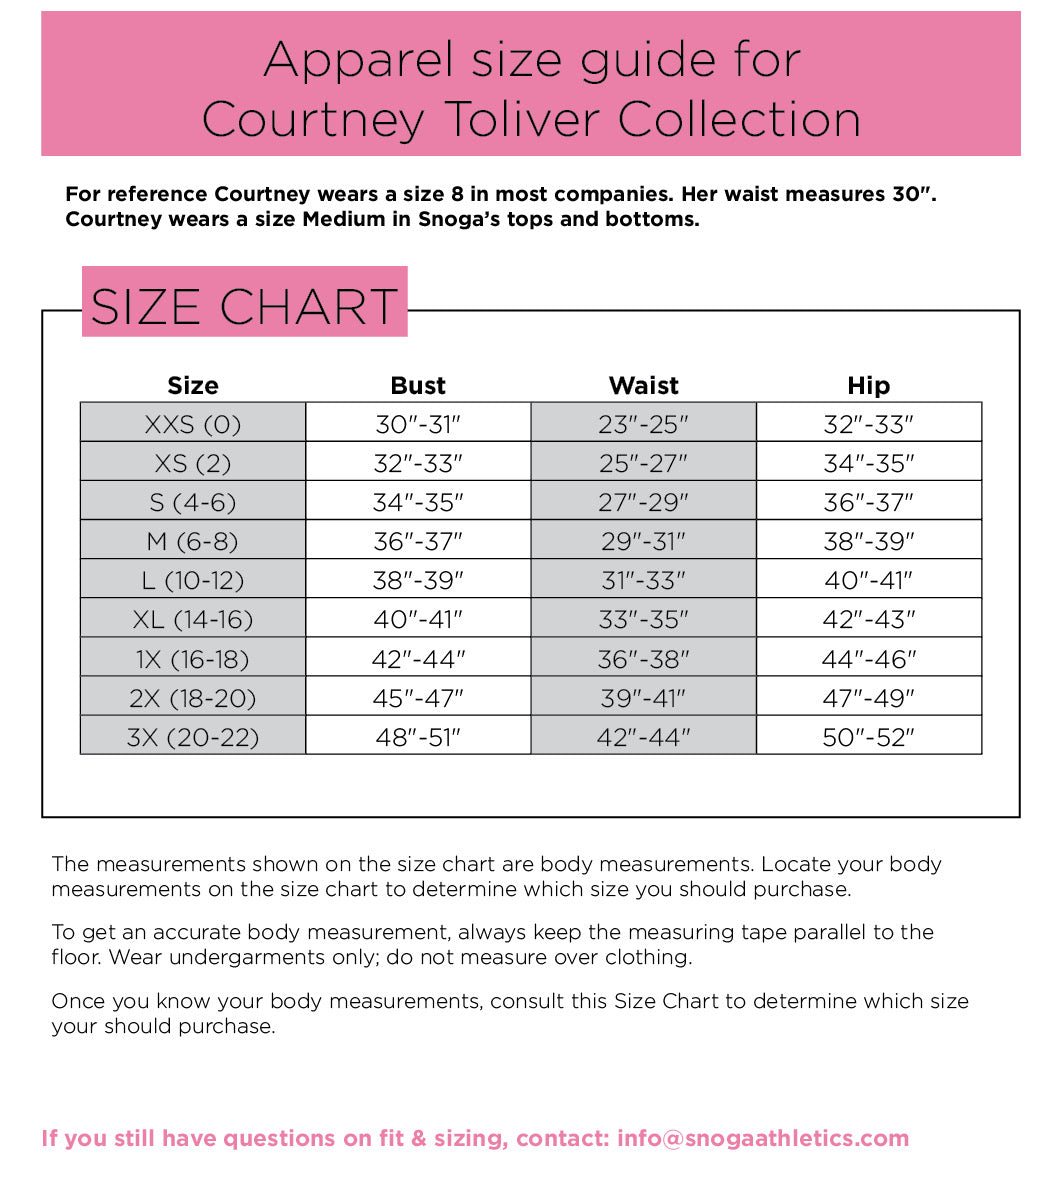 Courtney Toliver Collection Size Chart